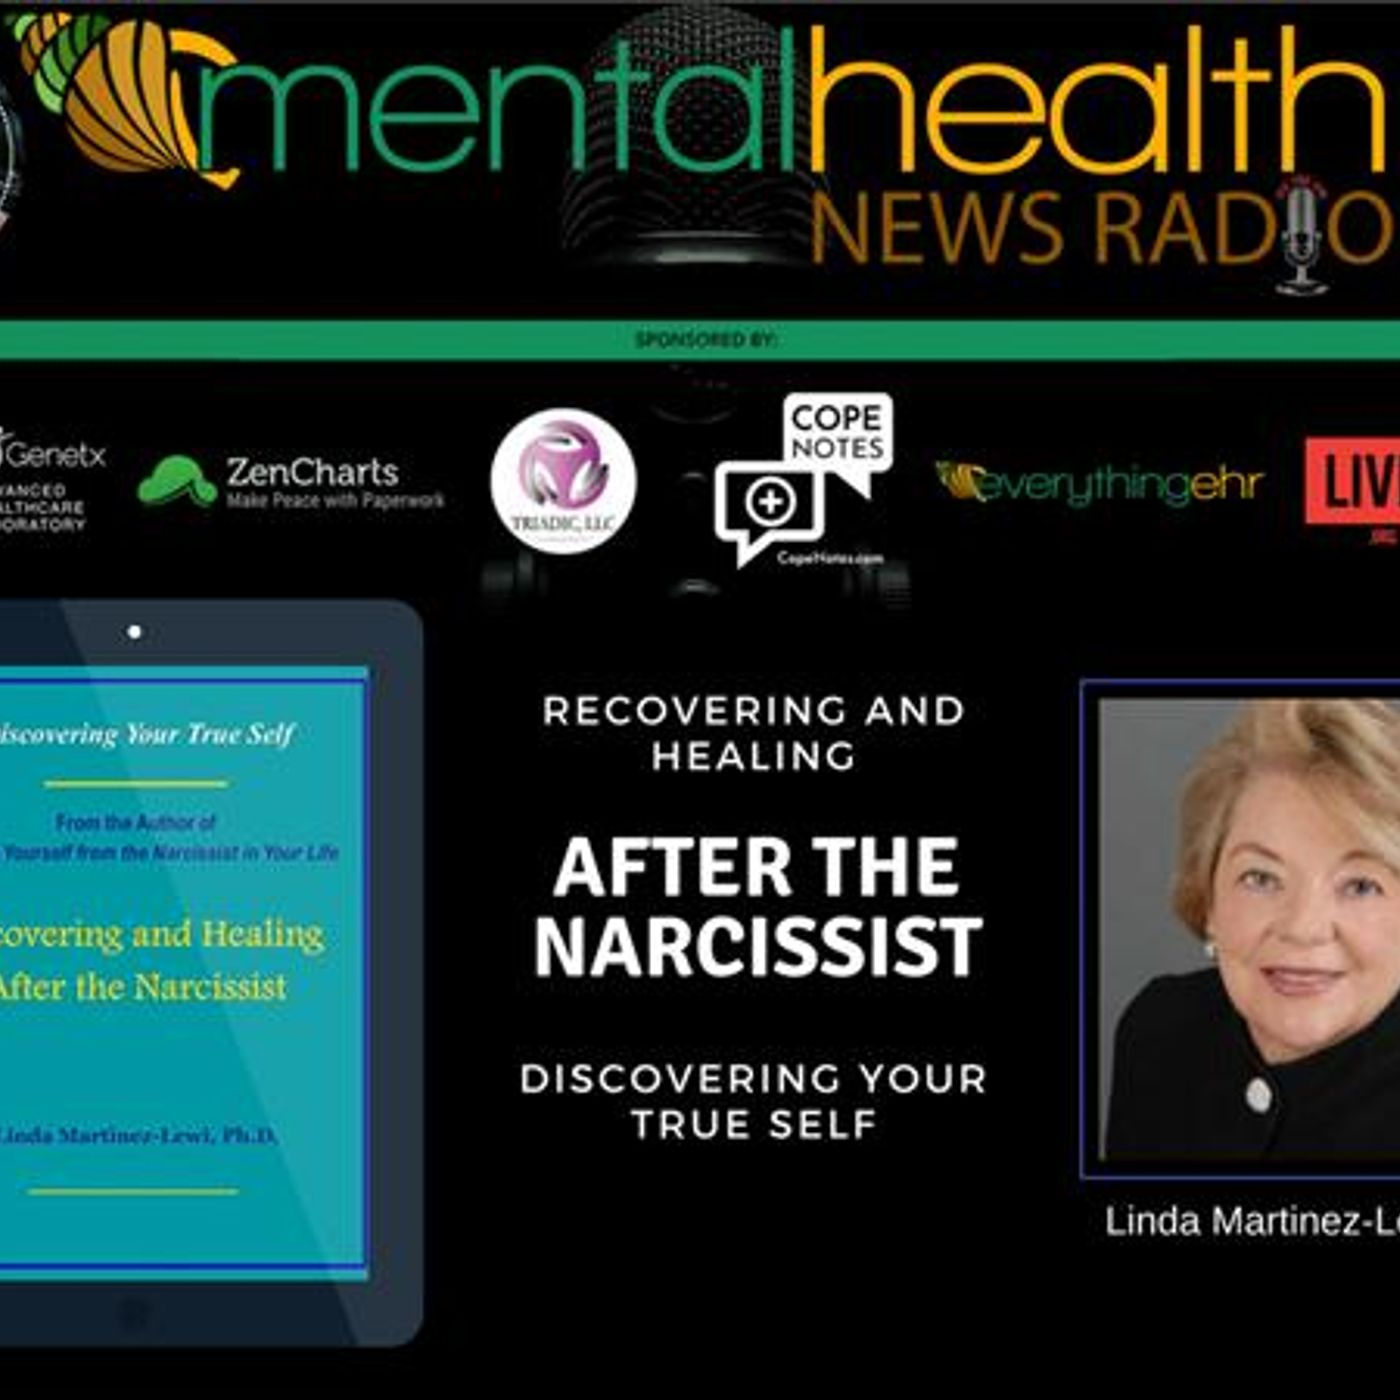 Mental Health News Radio - Recovering and Healing After the Narcissist: Discovering Your True Self